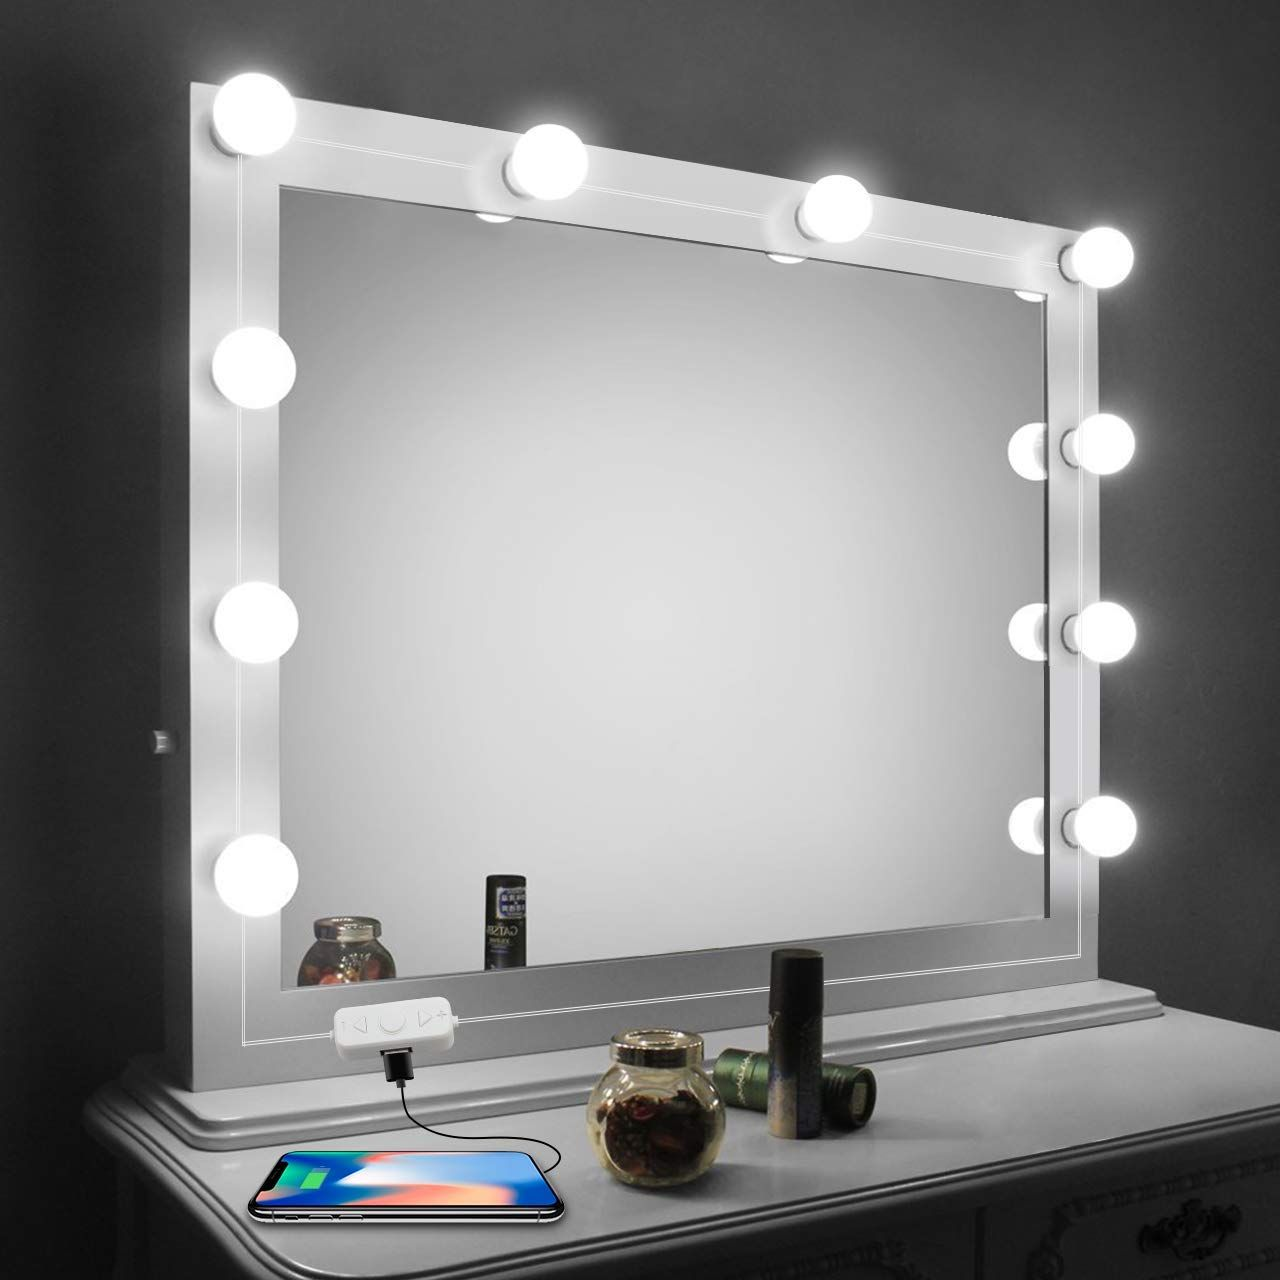 Vanity Mirror Lights Kit Led Lights For Mirror With Dimmer And